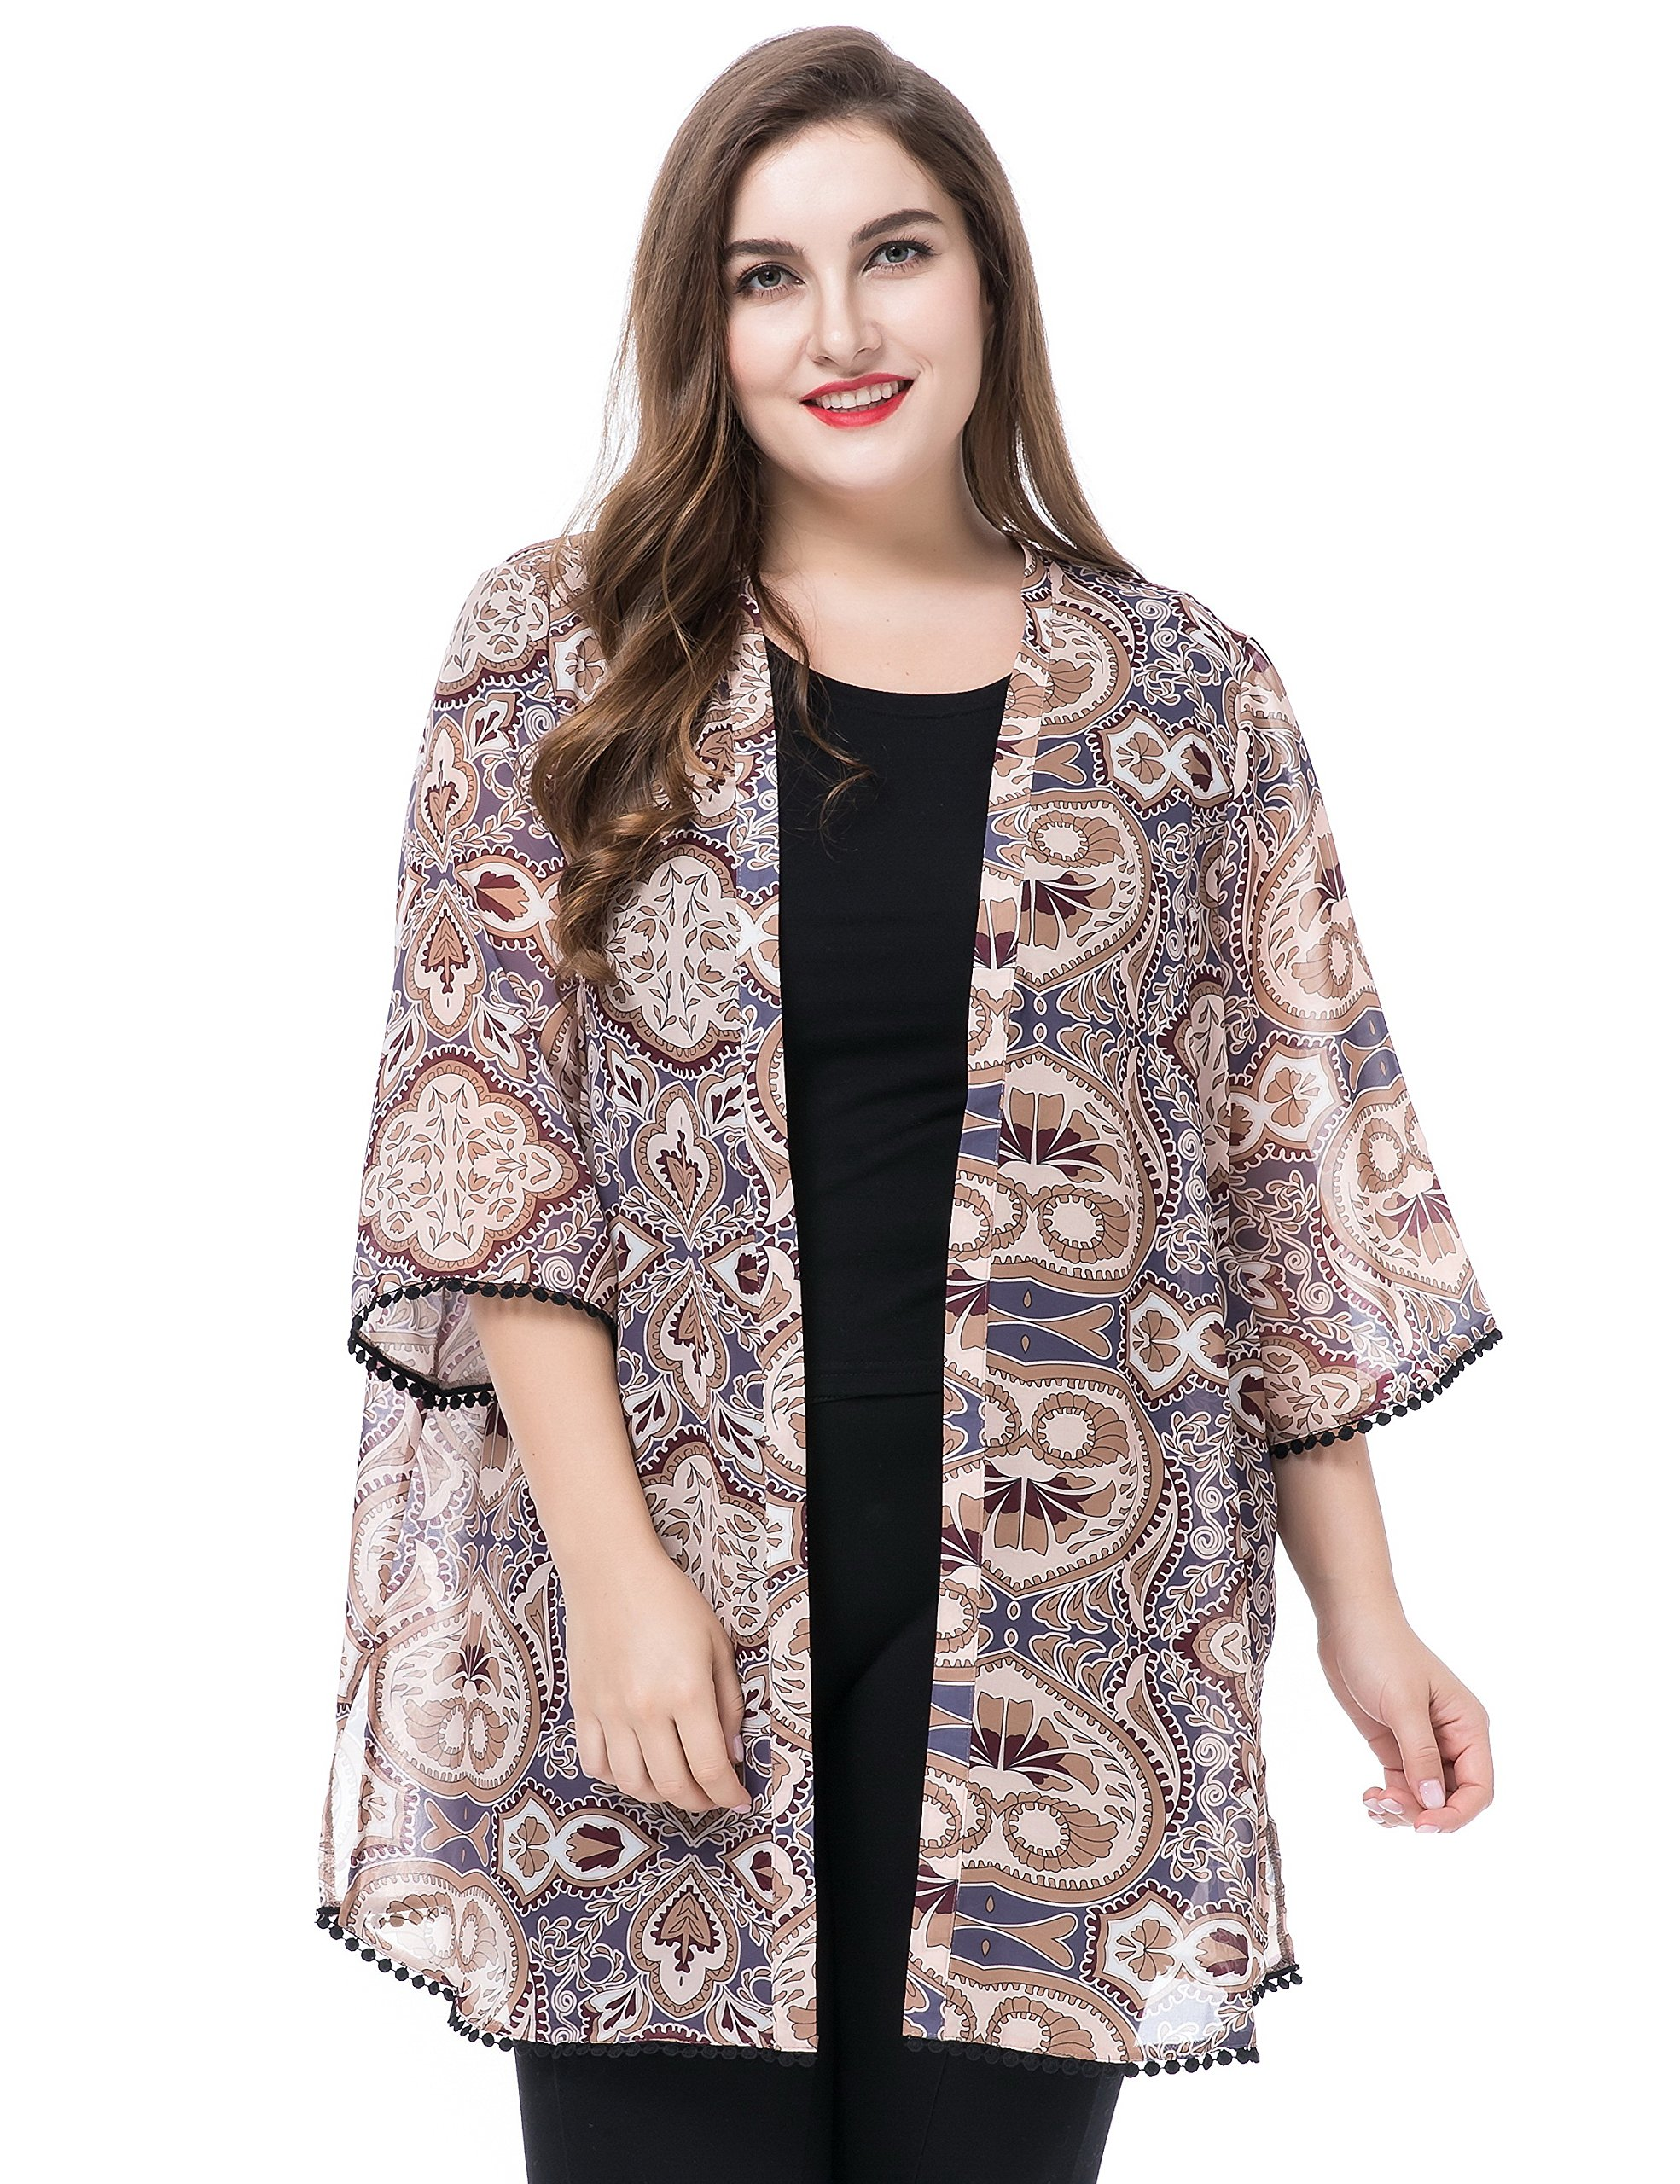 Chicwe Women's Plus Size Floral Printed Chiffon Summer Cover up with Trim Cuff & Hem- Kimono Kaftan Style Open Front Multi Stone 16 by Chicwe